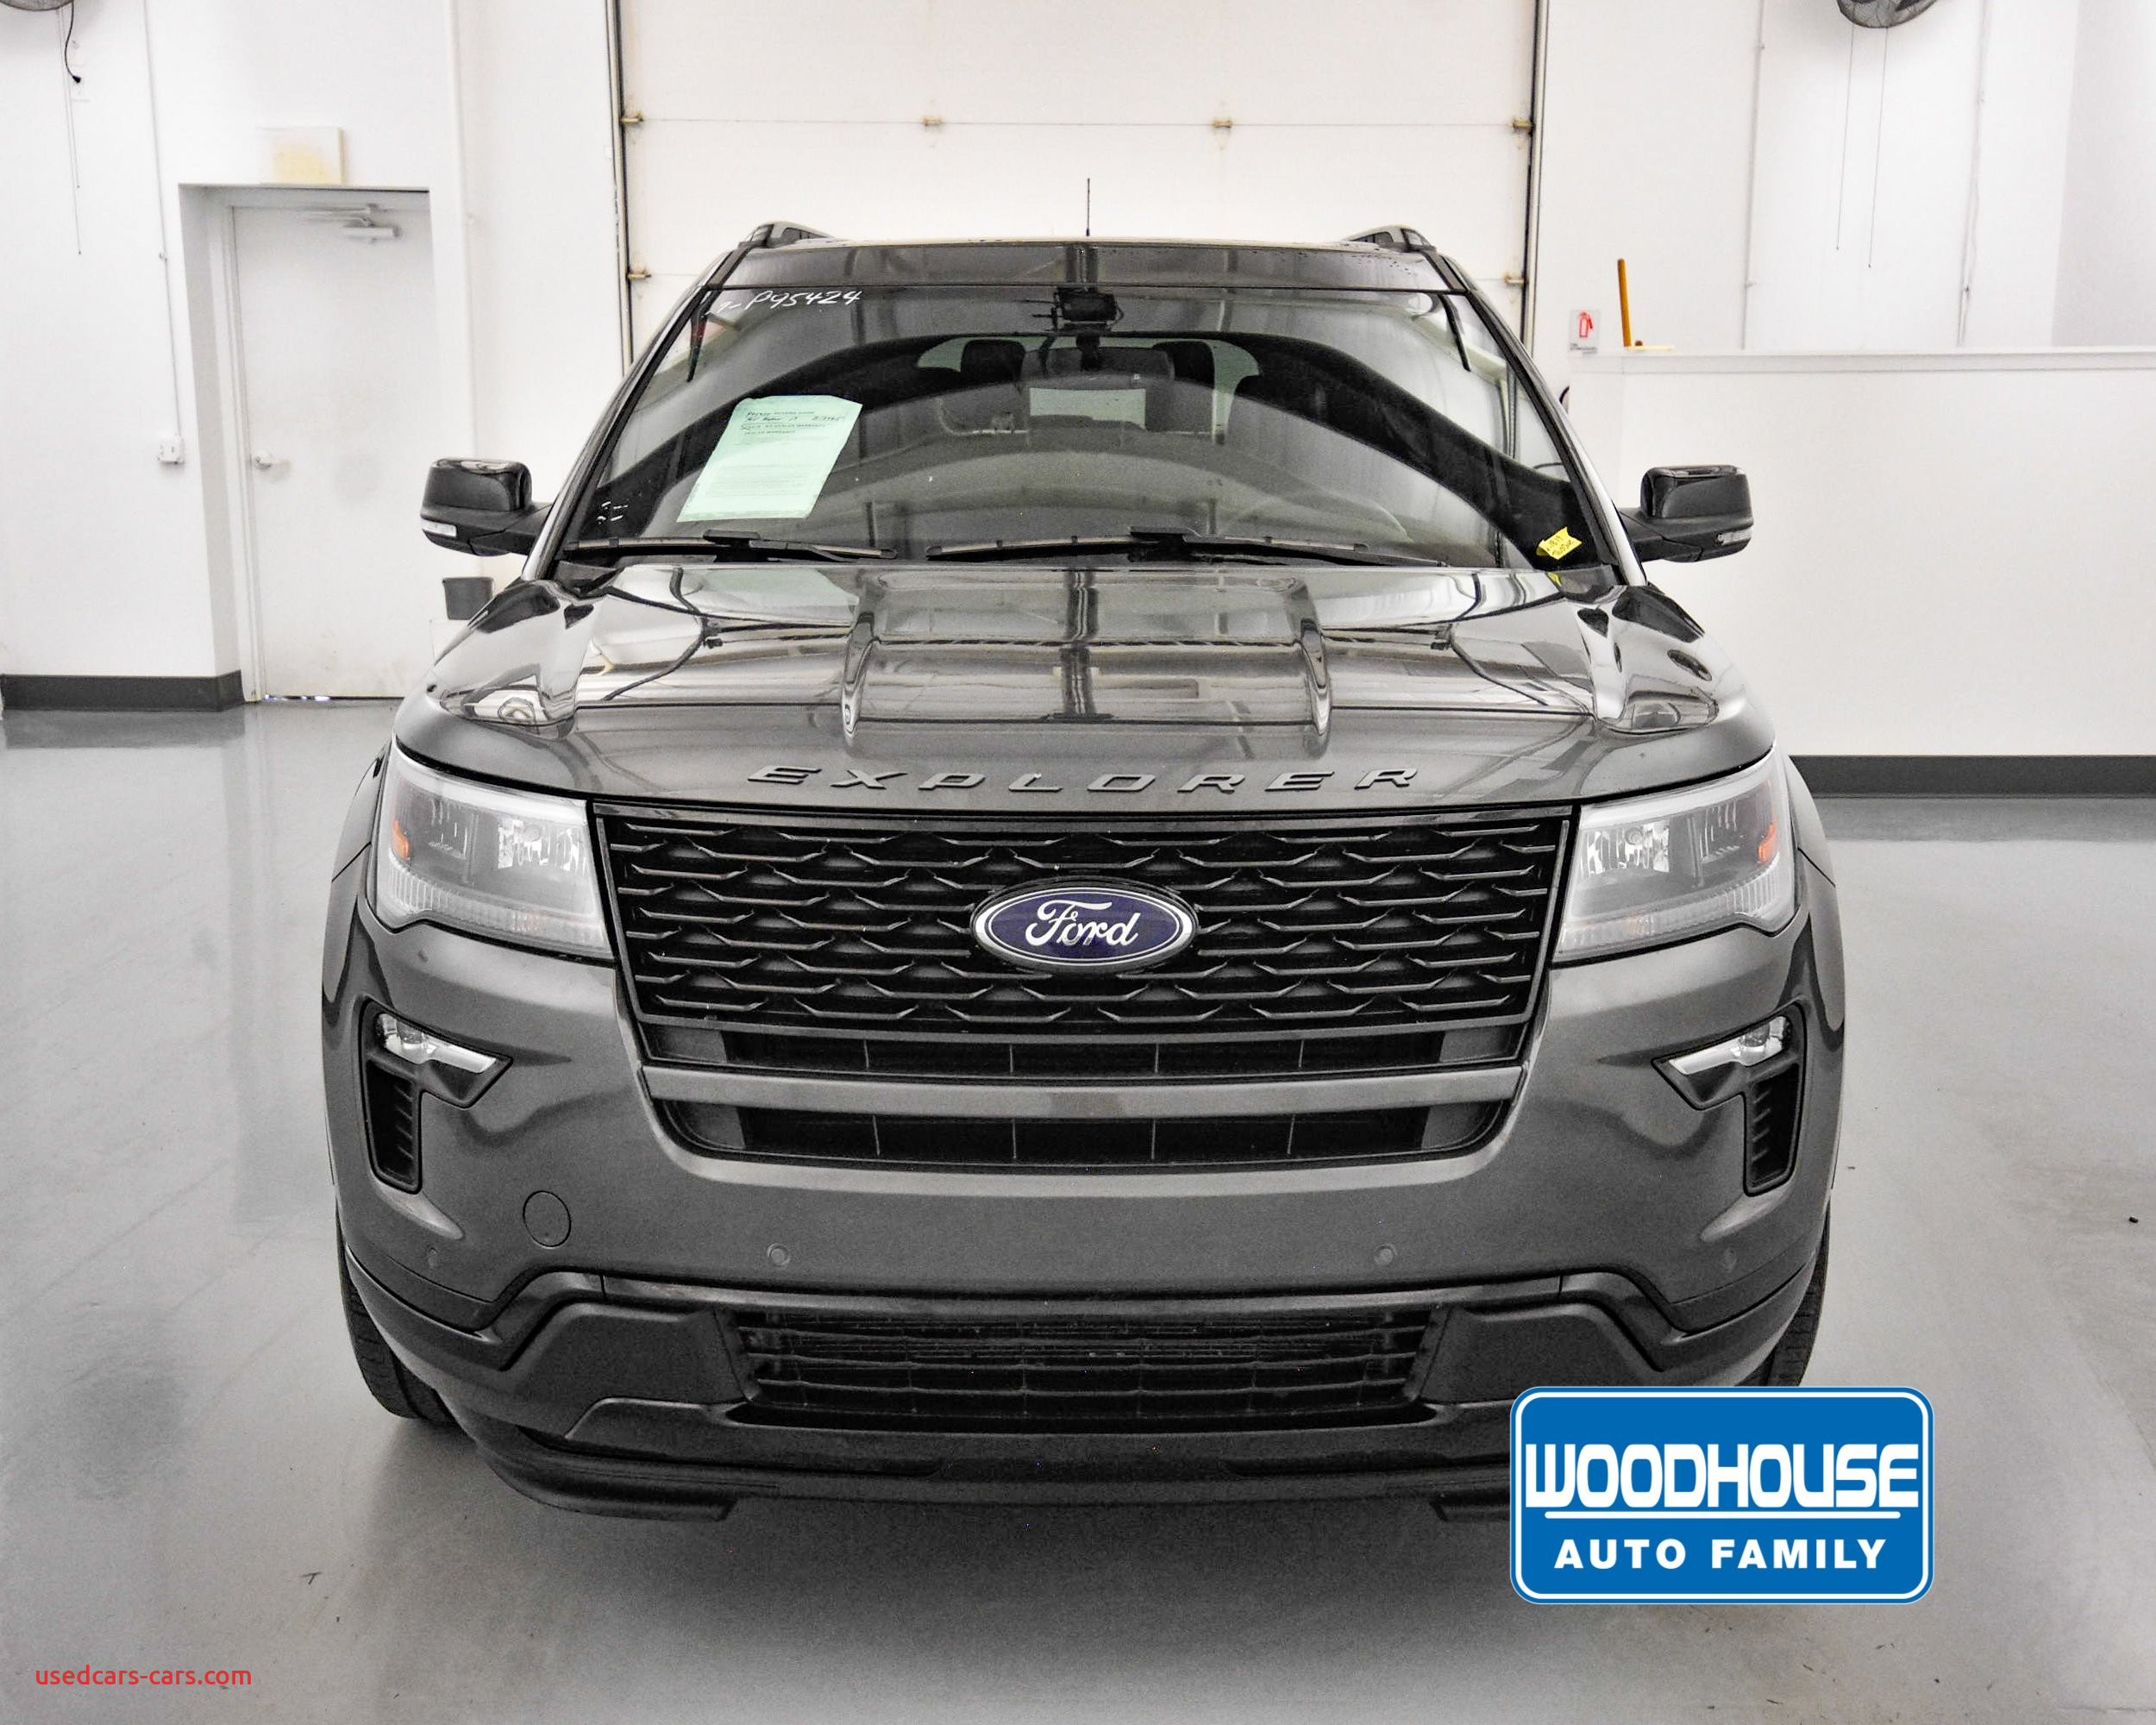 Ford Escape 2020 Quito Motors Beautiful Pre Owned 2019 ford Explorer Sport with Navigation & 4wd